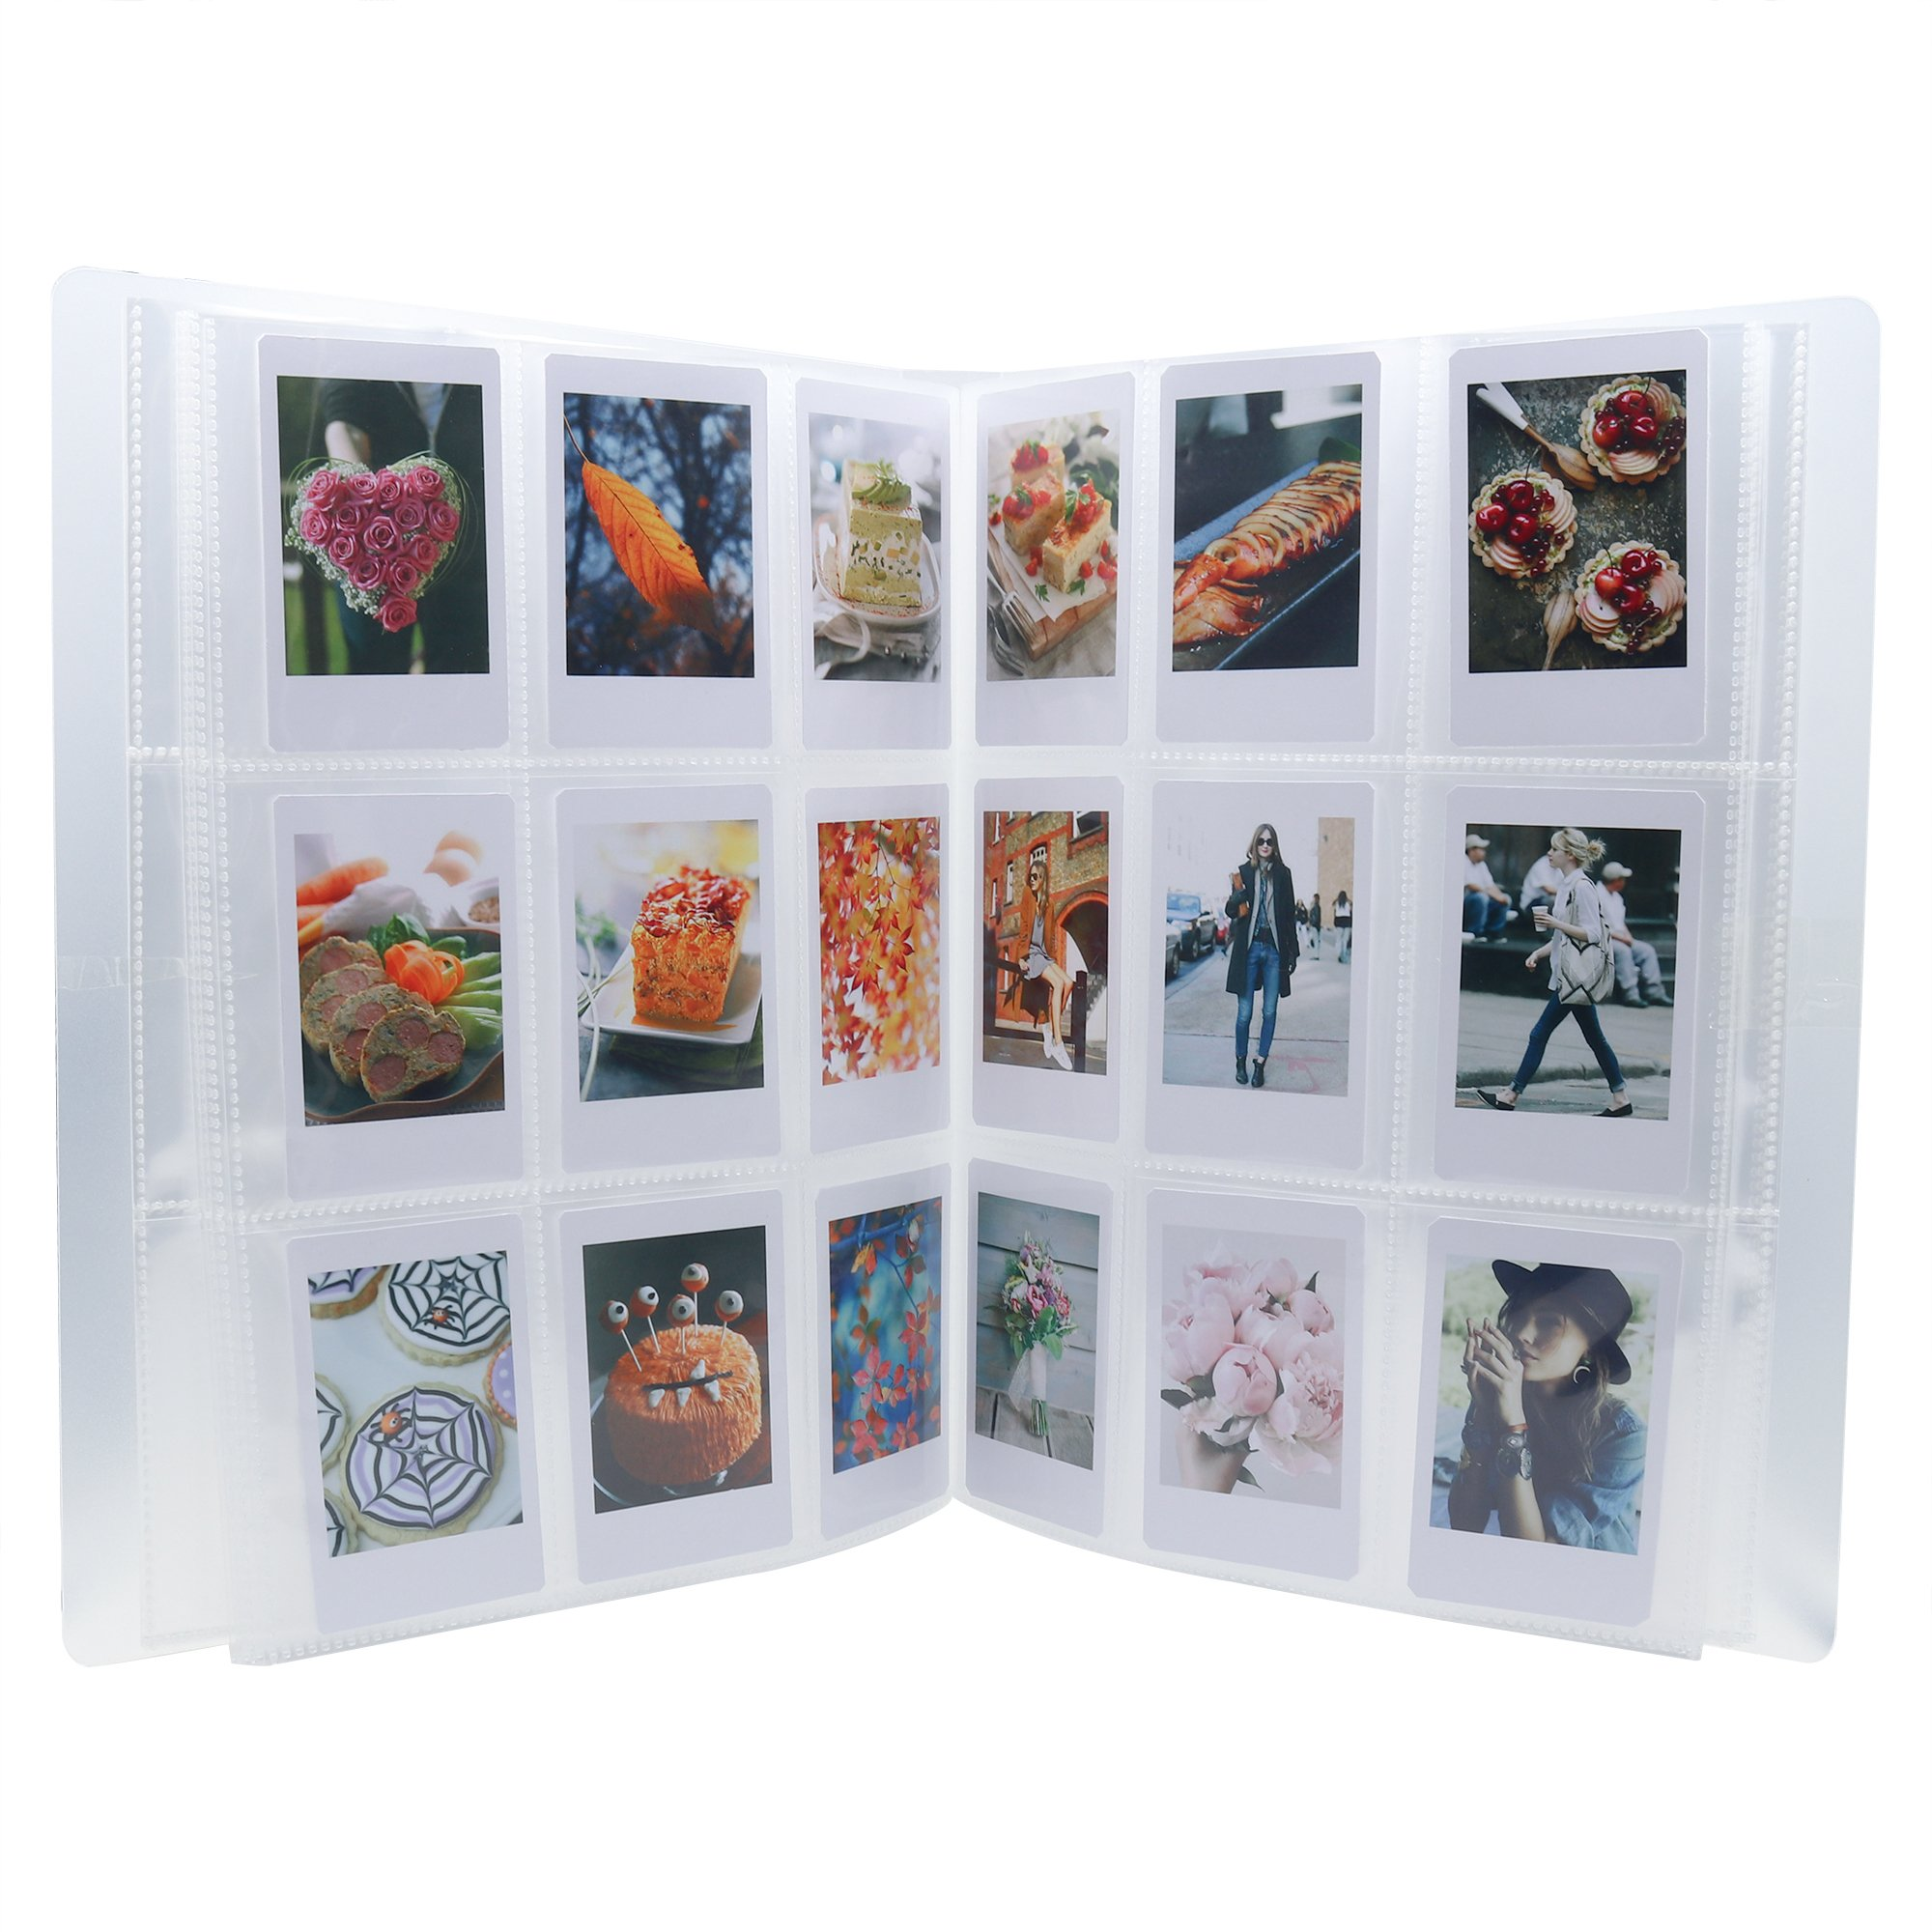 Ablus 288 Pockets Mini Photo Album for Fujifilm Instax Mini 7s 8 8+ 9 25 26 50s 70 90 Film, Name Card & 3 Inch Pictures by Ablus